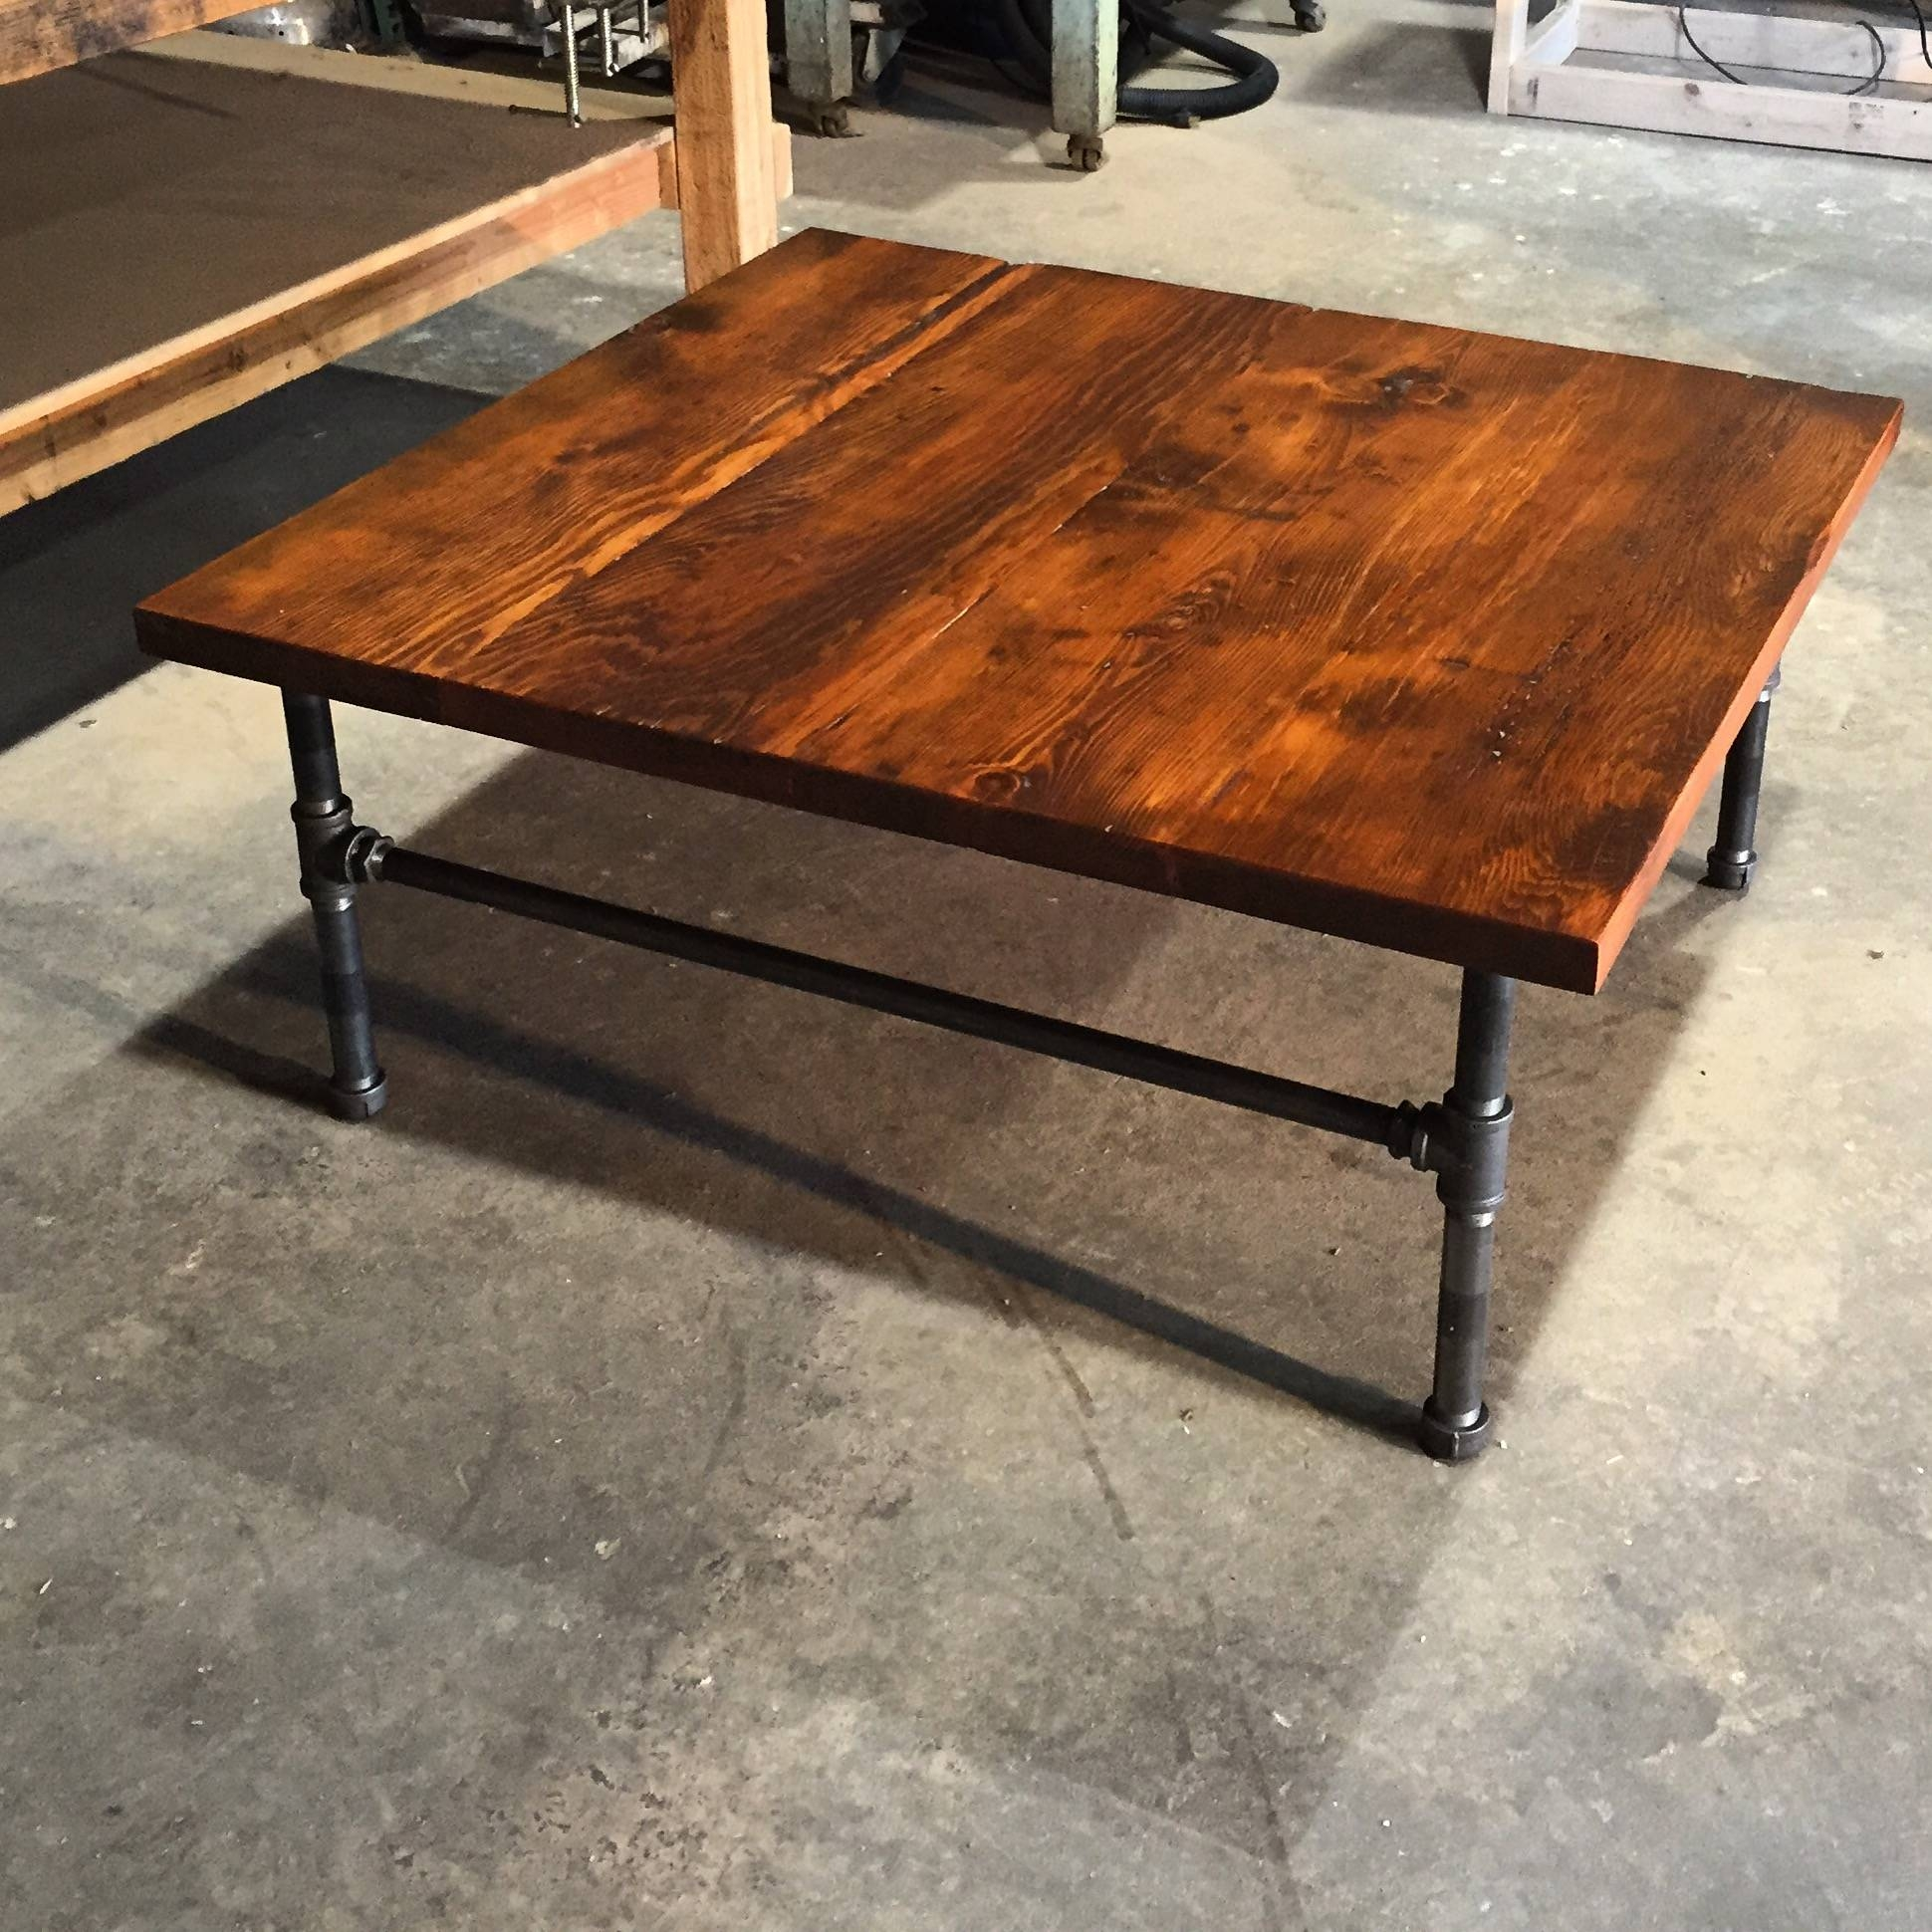 Table. Reclaimed Wood Square Coffee Table - Home Interior Design throughout Reclaimed Wood And Glass Coffee Tables (Image 28 of 30)